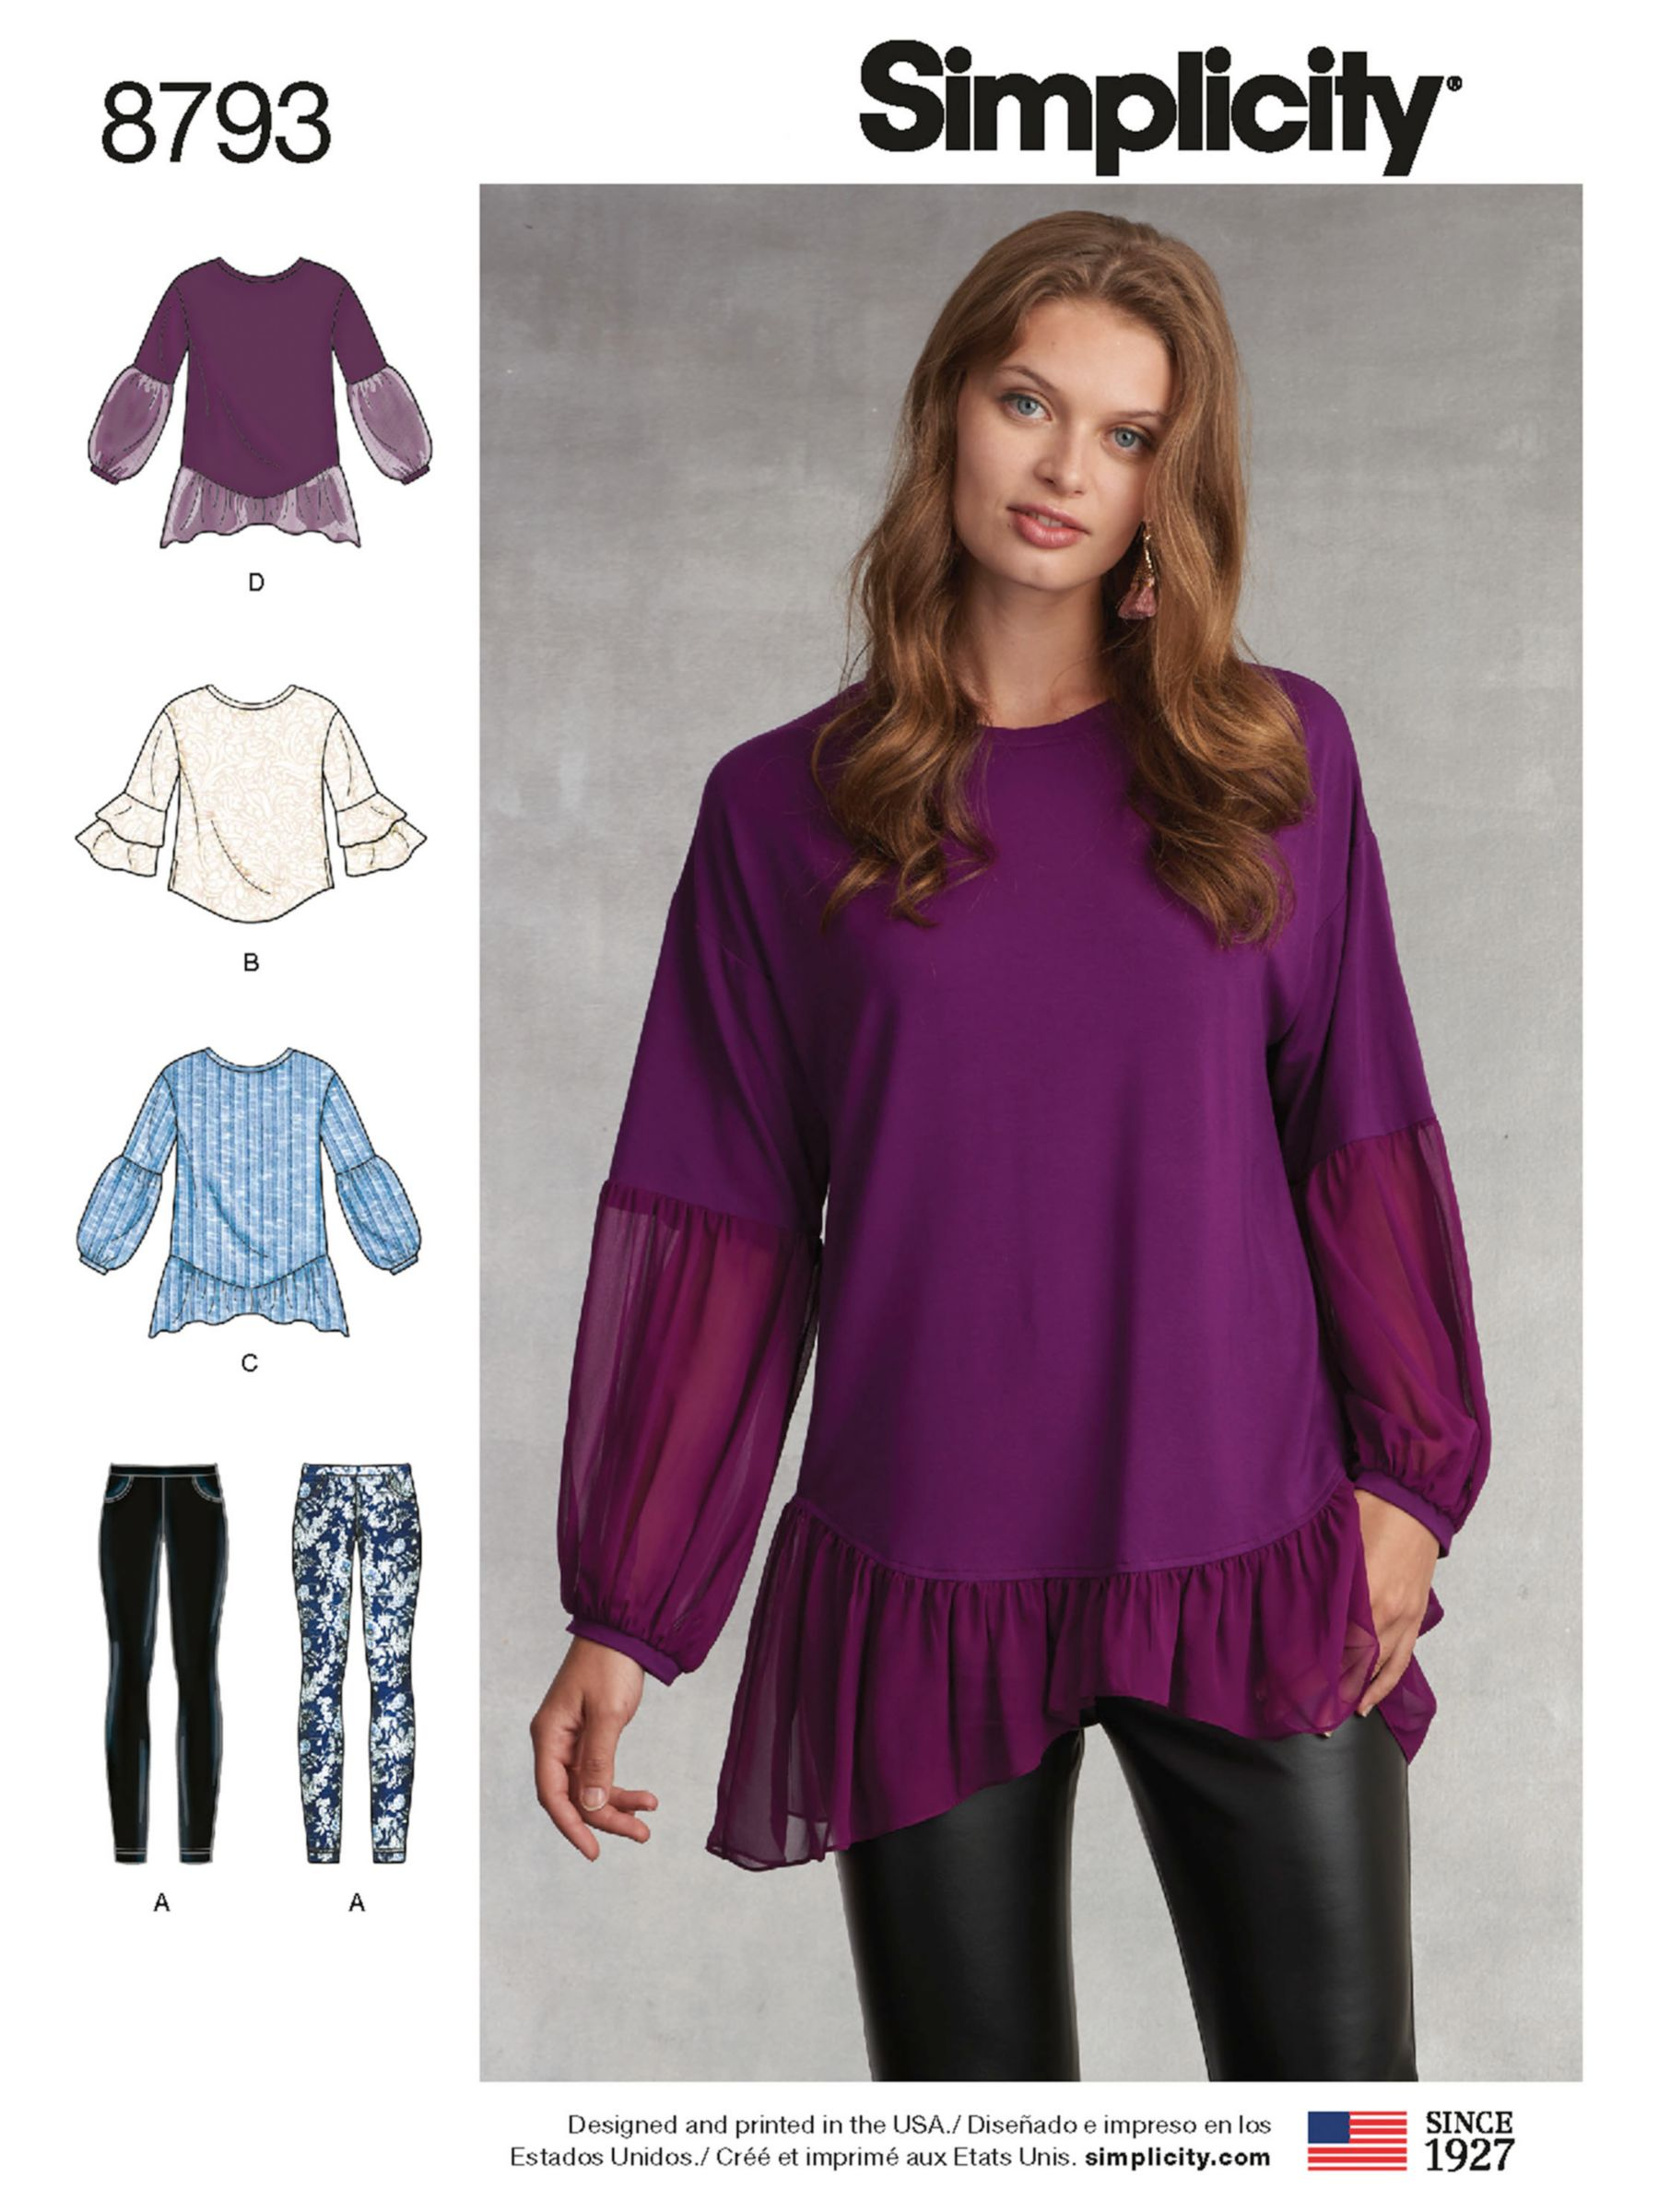 Simplicity Simplicity Women's Tunic Top and Leggings Sewing Pattern, 8793